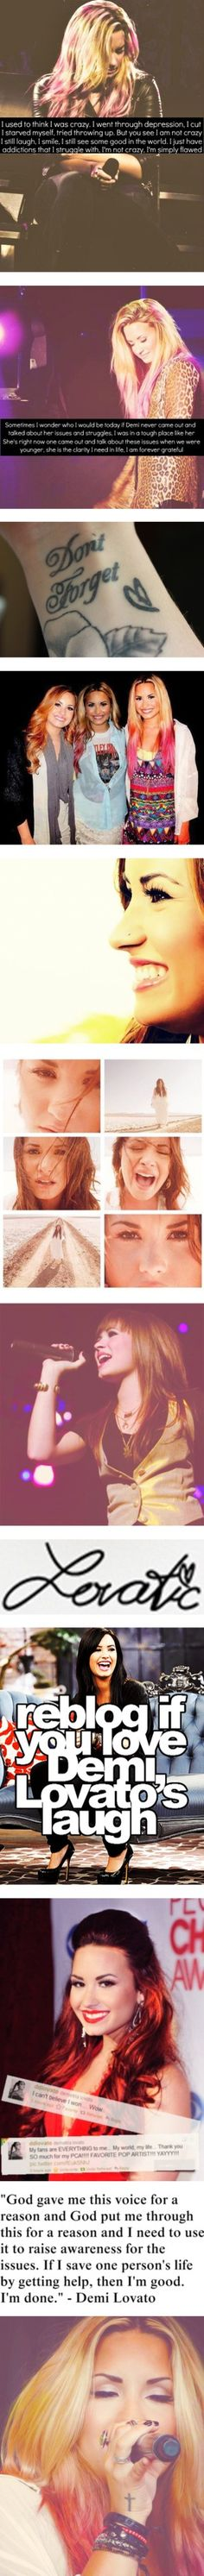 """its a lovatic thing ;)'' I sooo adore Demi :') she's the best person and the greatest role model"